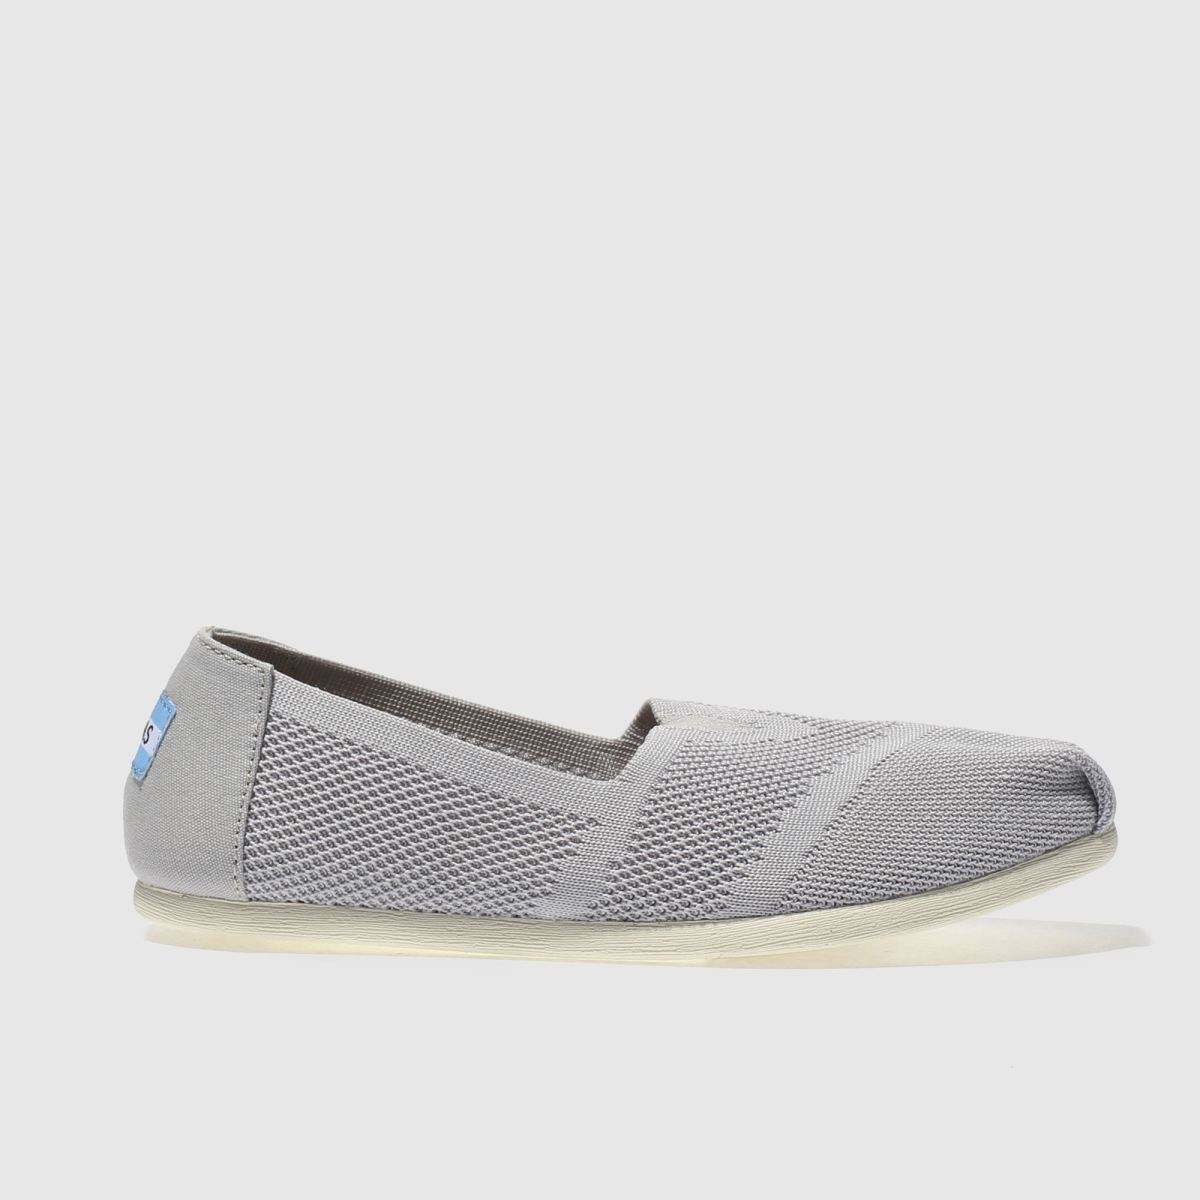 toms light grey seasonal classic custom knit flat shoes